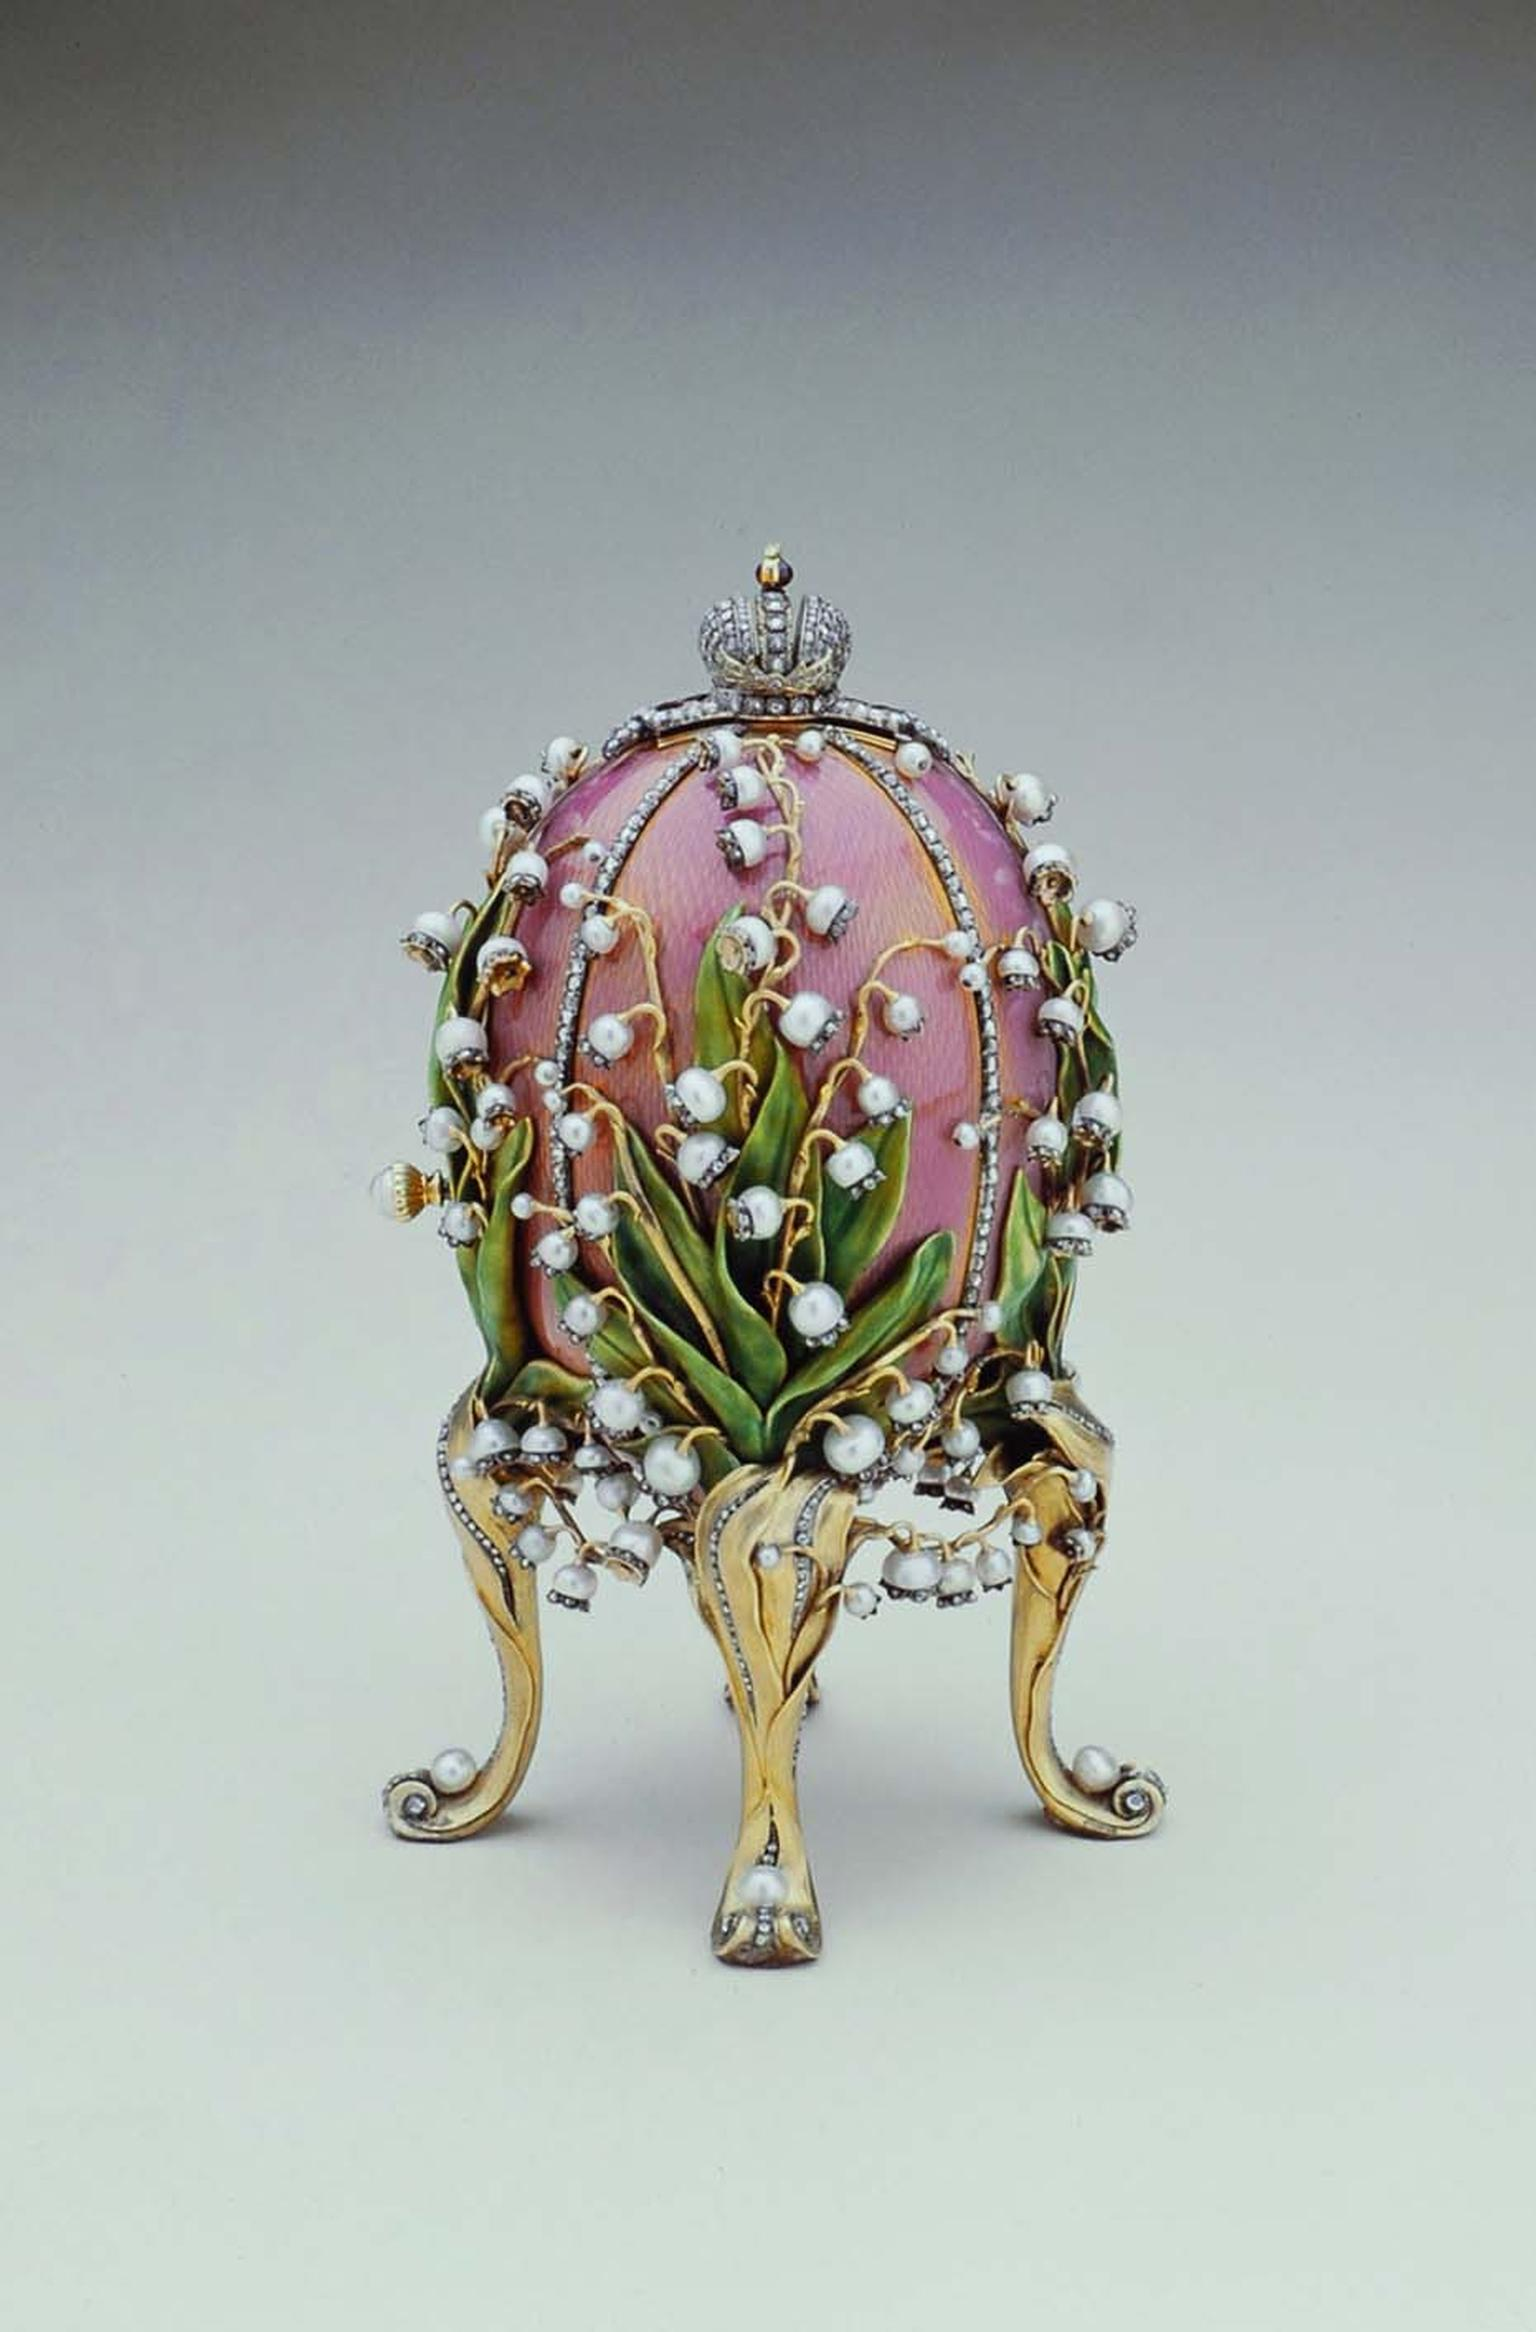 Tsar Nicholas II presented Empress Alexandra with this Fabergé Lilies of the Valley Egg. Made of gold, overlaid with translucent rose pink enamel, the beautiful creation is decorated with enamelled green leaves and pearls, complete with rose-cut diamond d